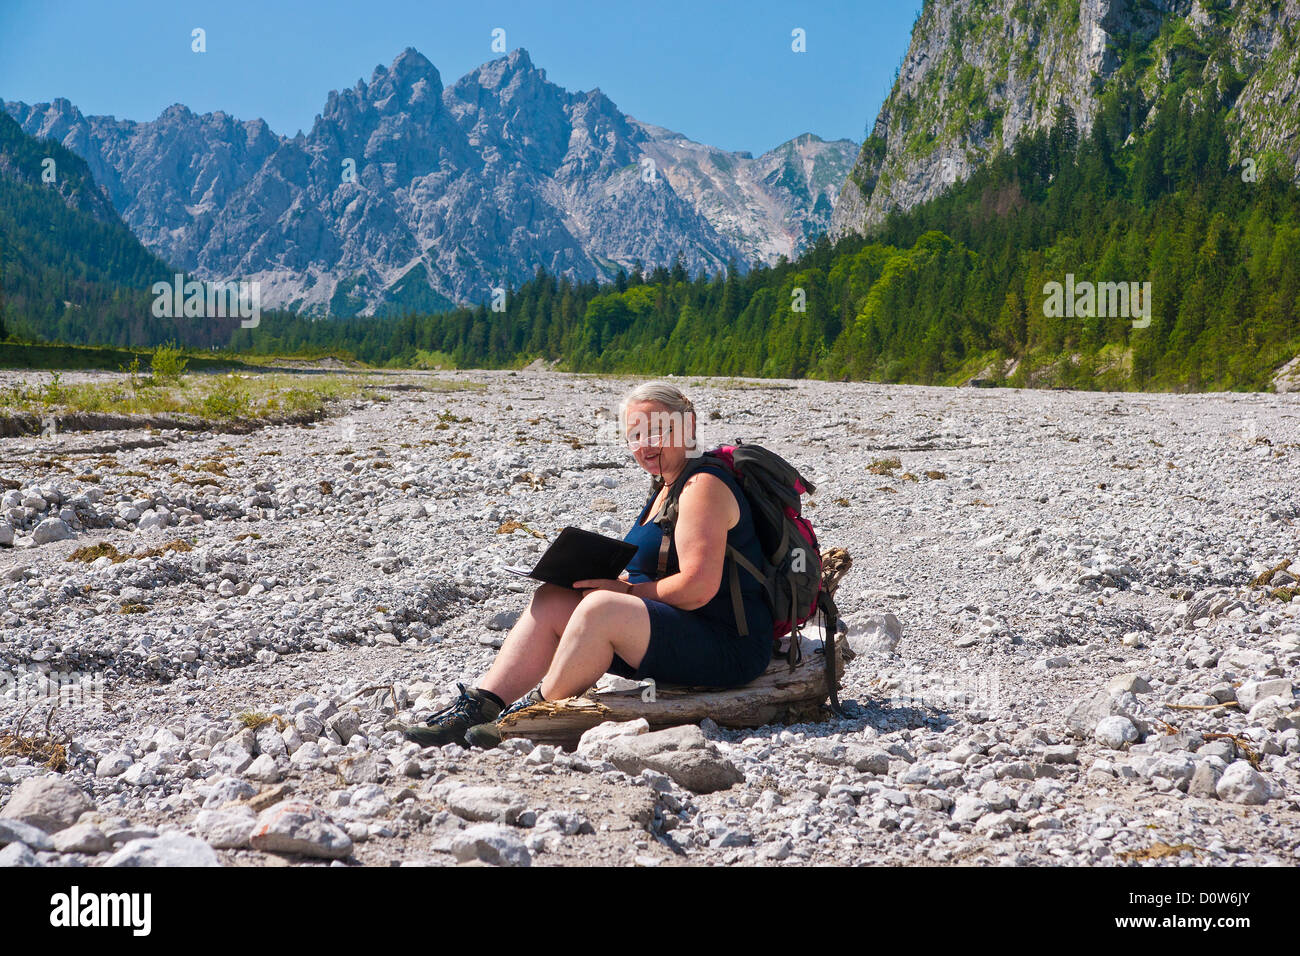 Bavaria, Europe, travellers, traveler, Berchtesgaden, Ramsau, Wimbachgries, Steinmandl, stones, stone, sand, sits, - Stock Image